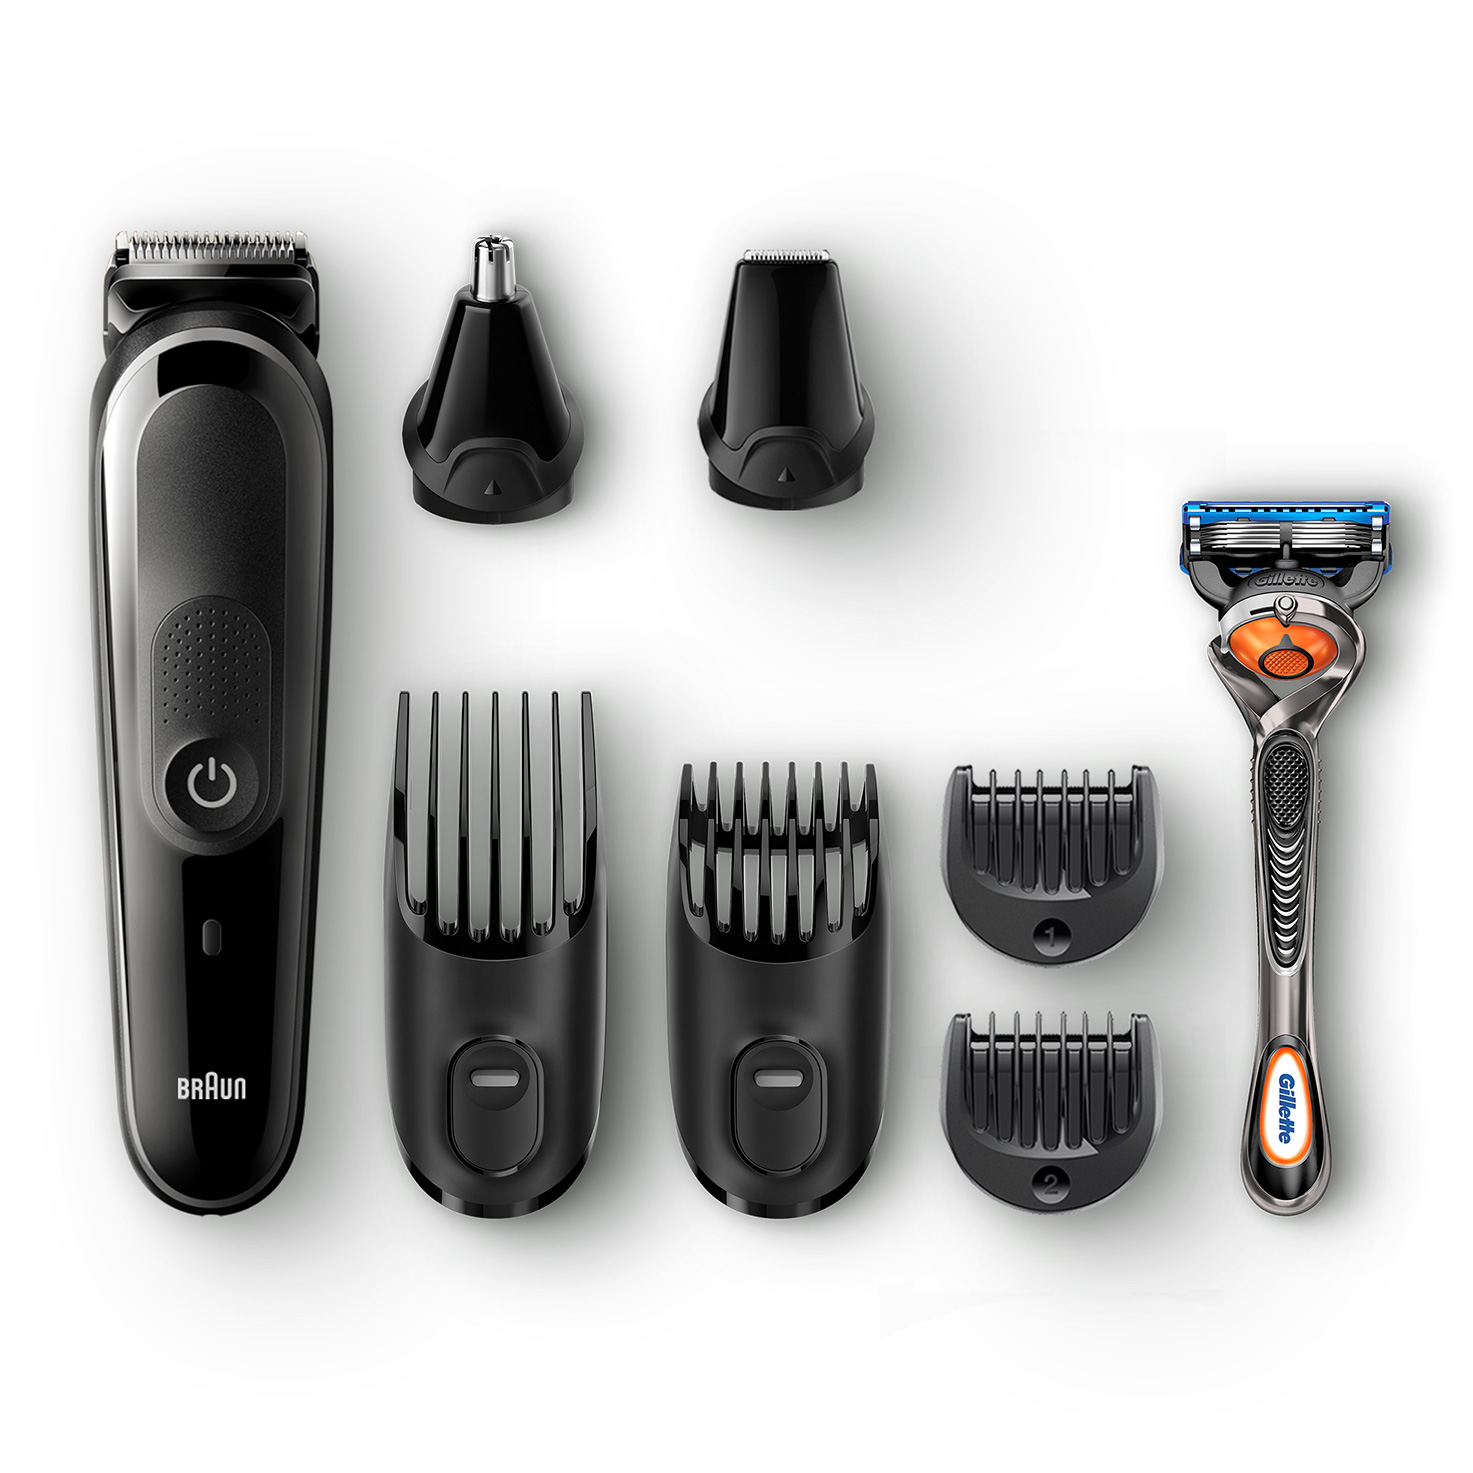 All in one trimmer MGK5060